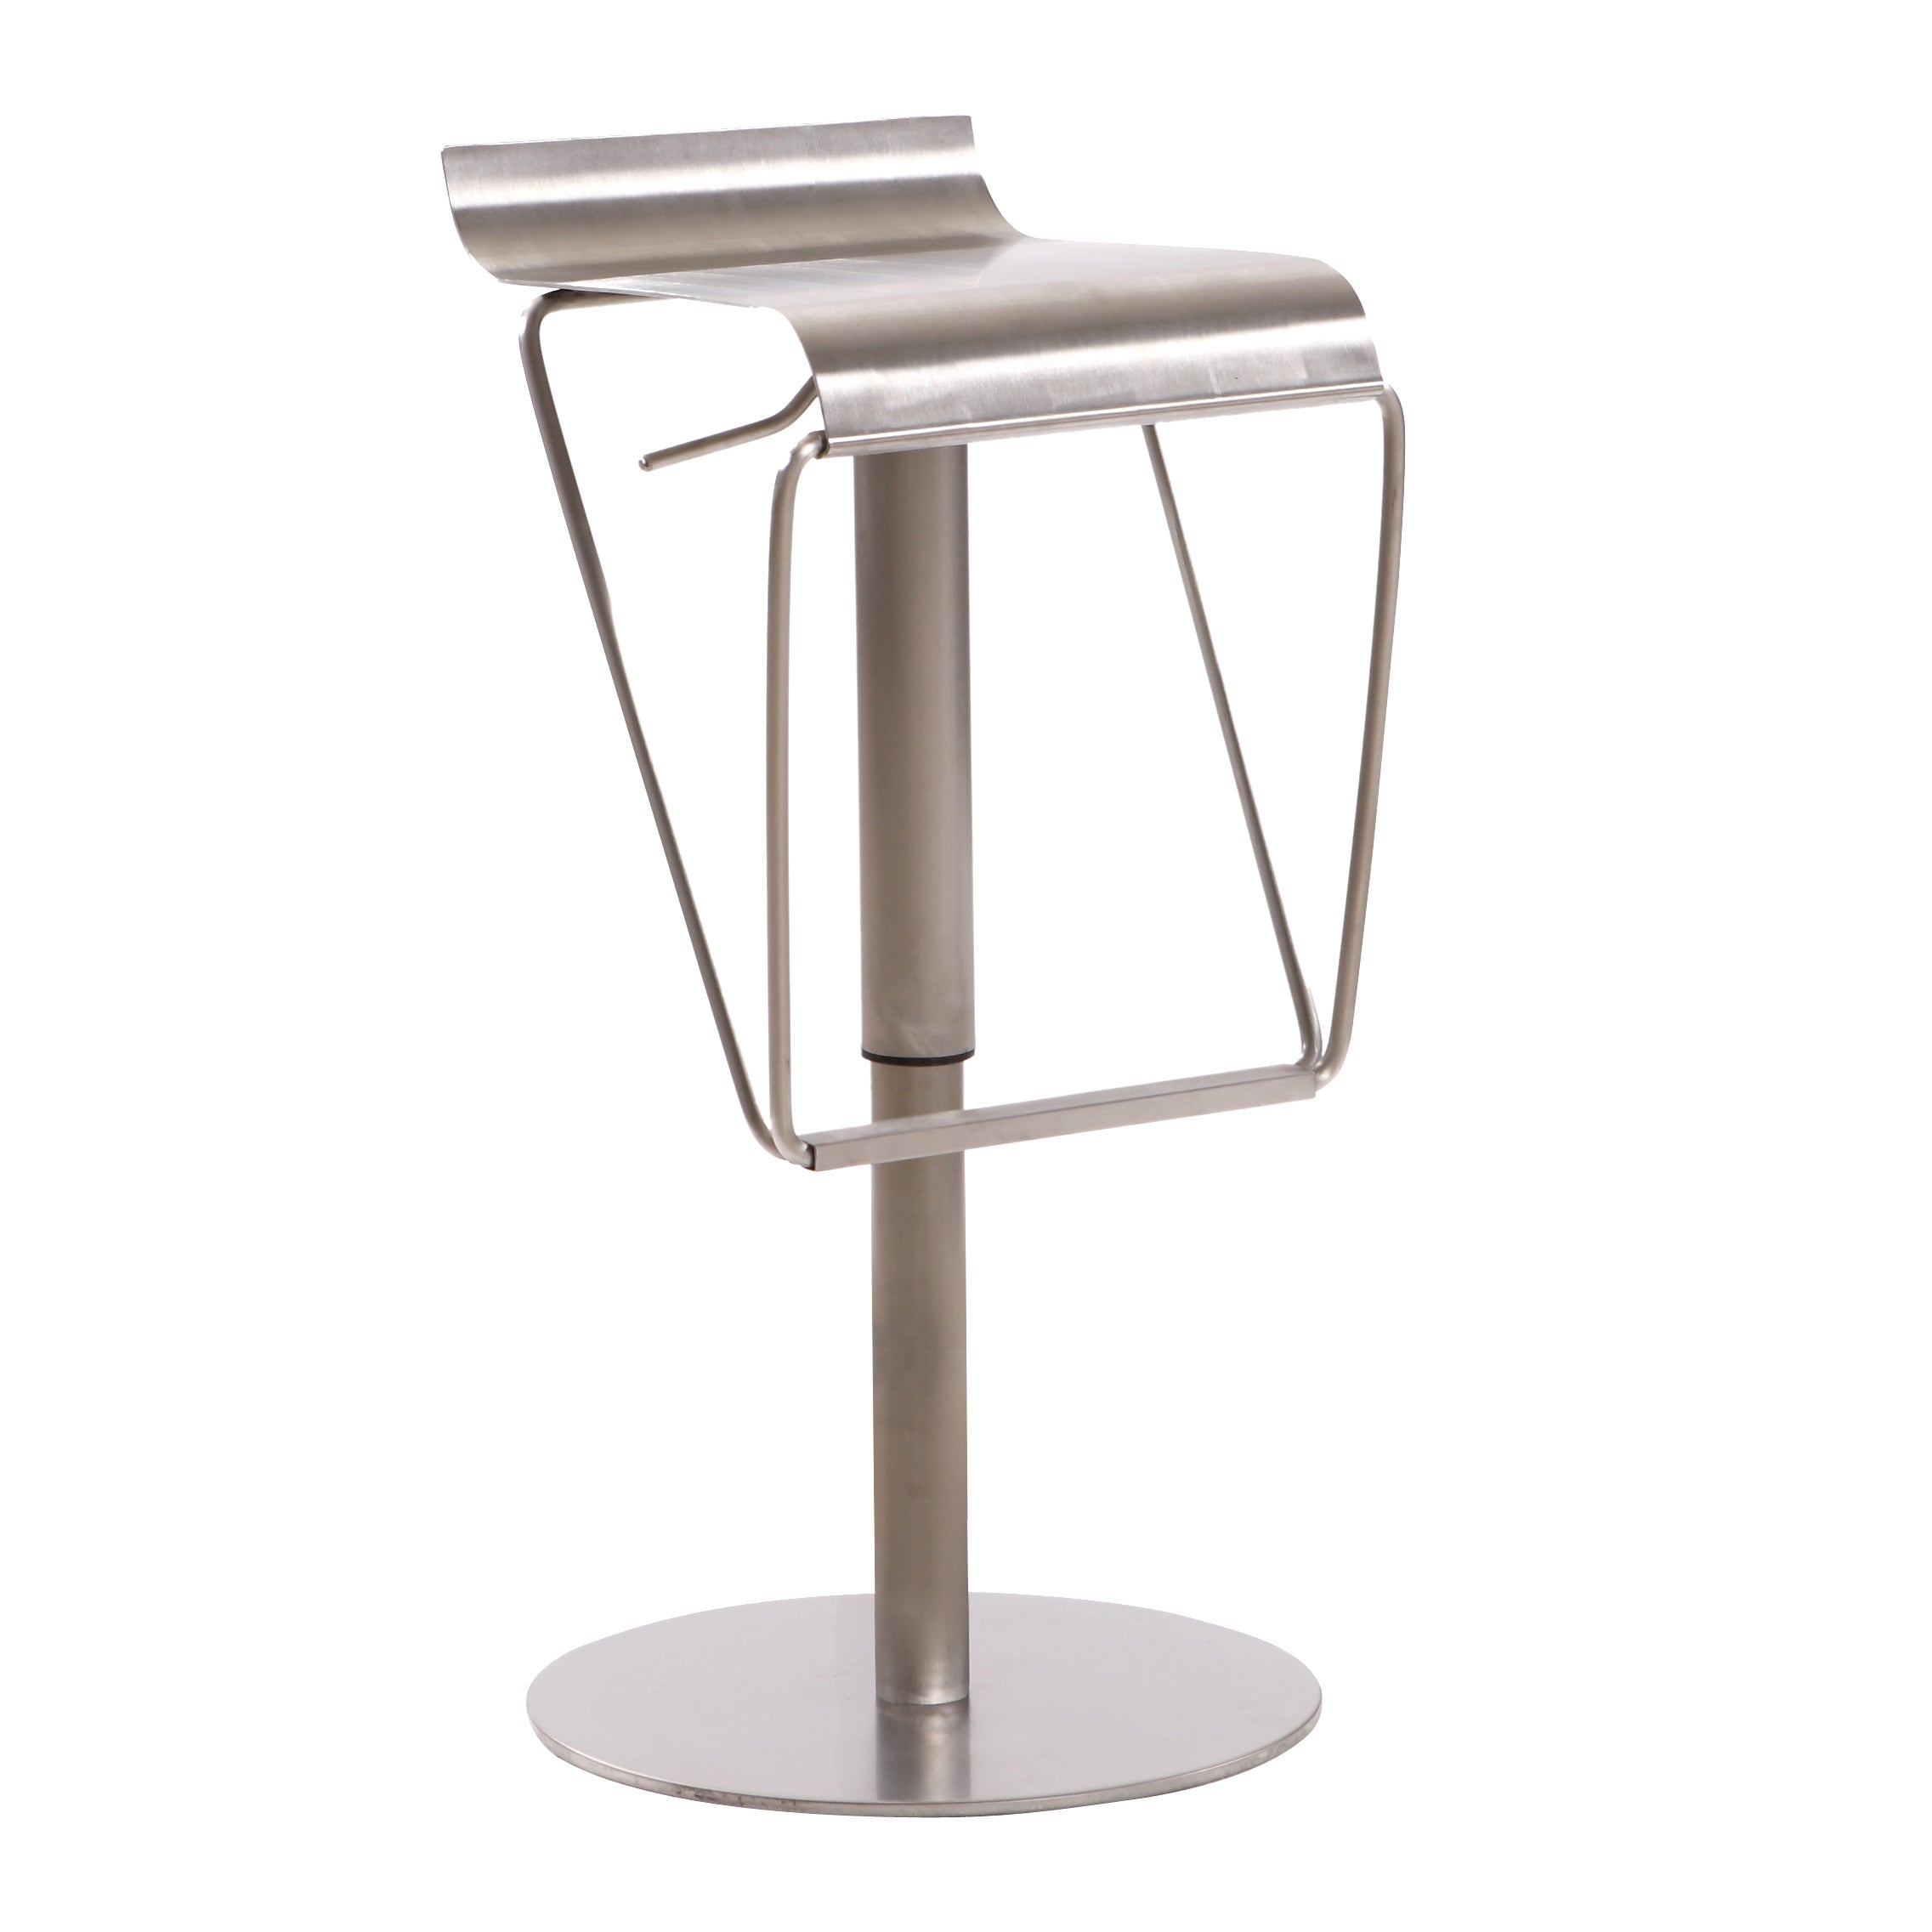 USA Lorenzo Silver Stainless Steel Low-back Barstool (Stainless Steel)